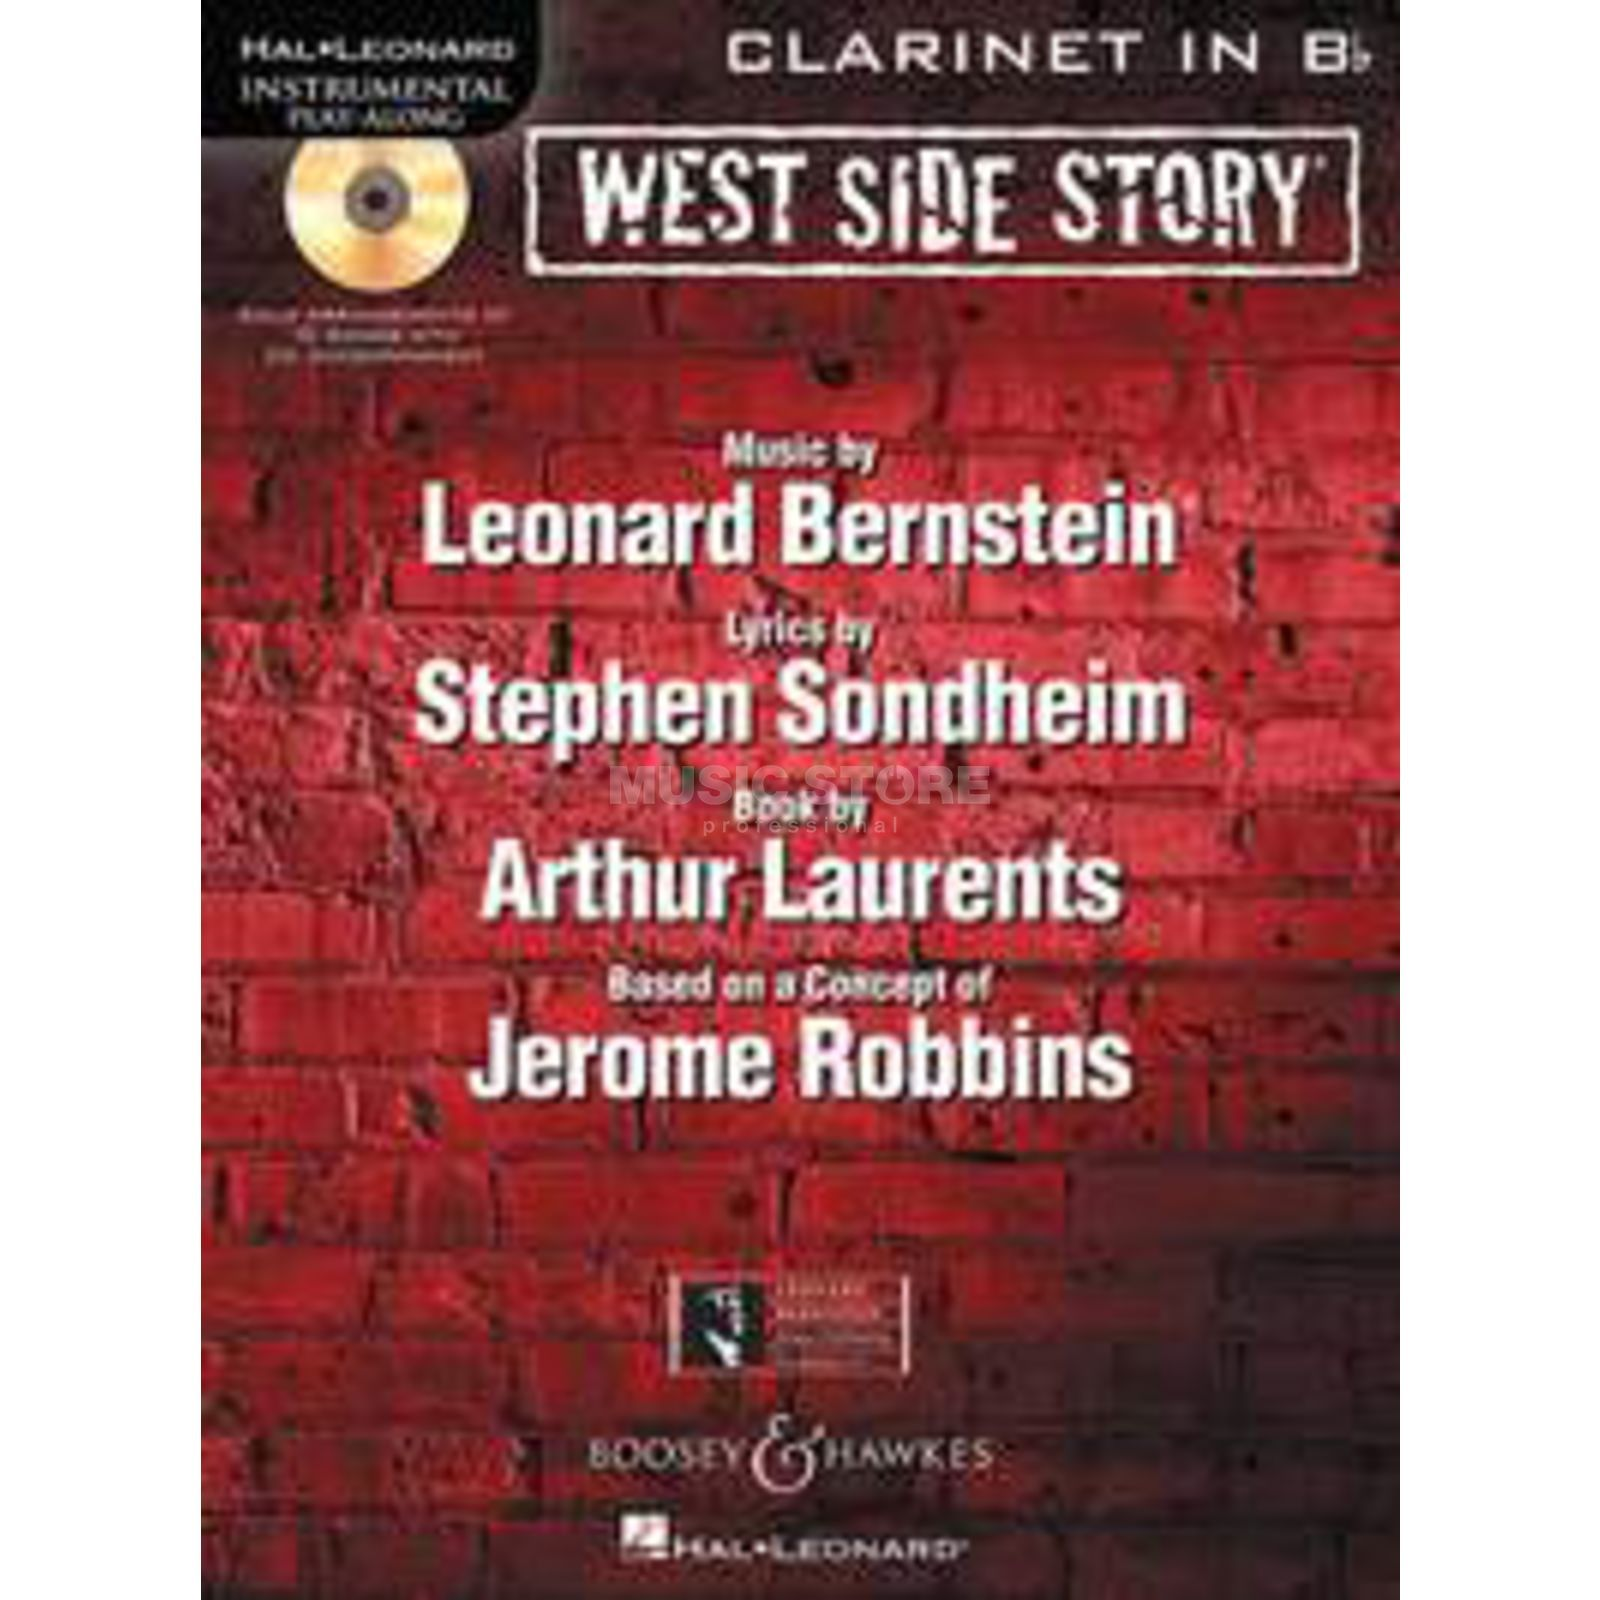 Boosey & Hawkes West Side Story, Play-Along Bernstein, Klarinette, Buch/CD Produktbild